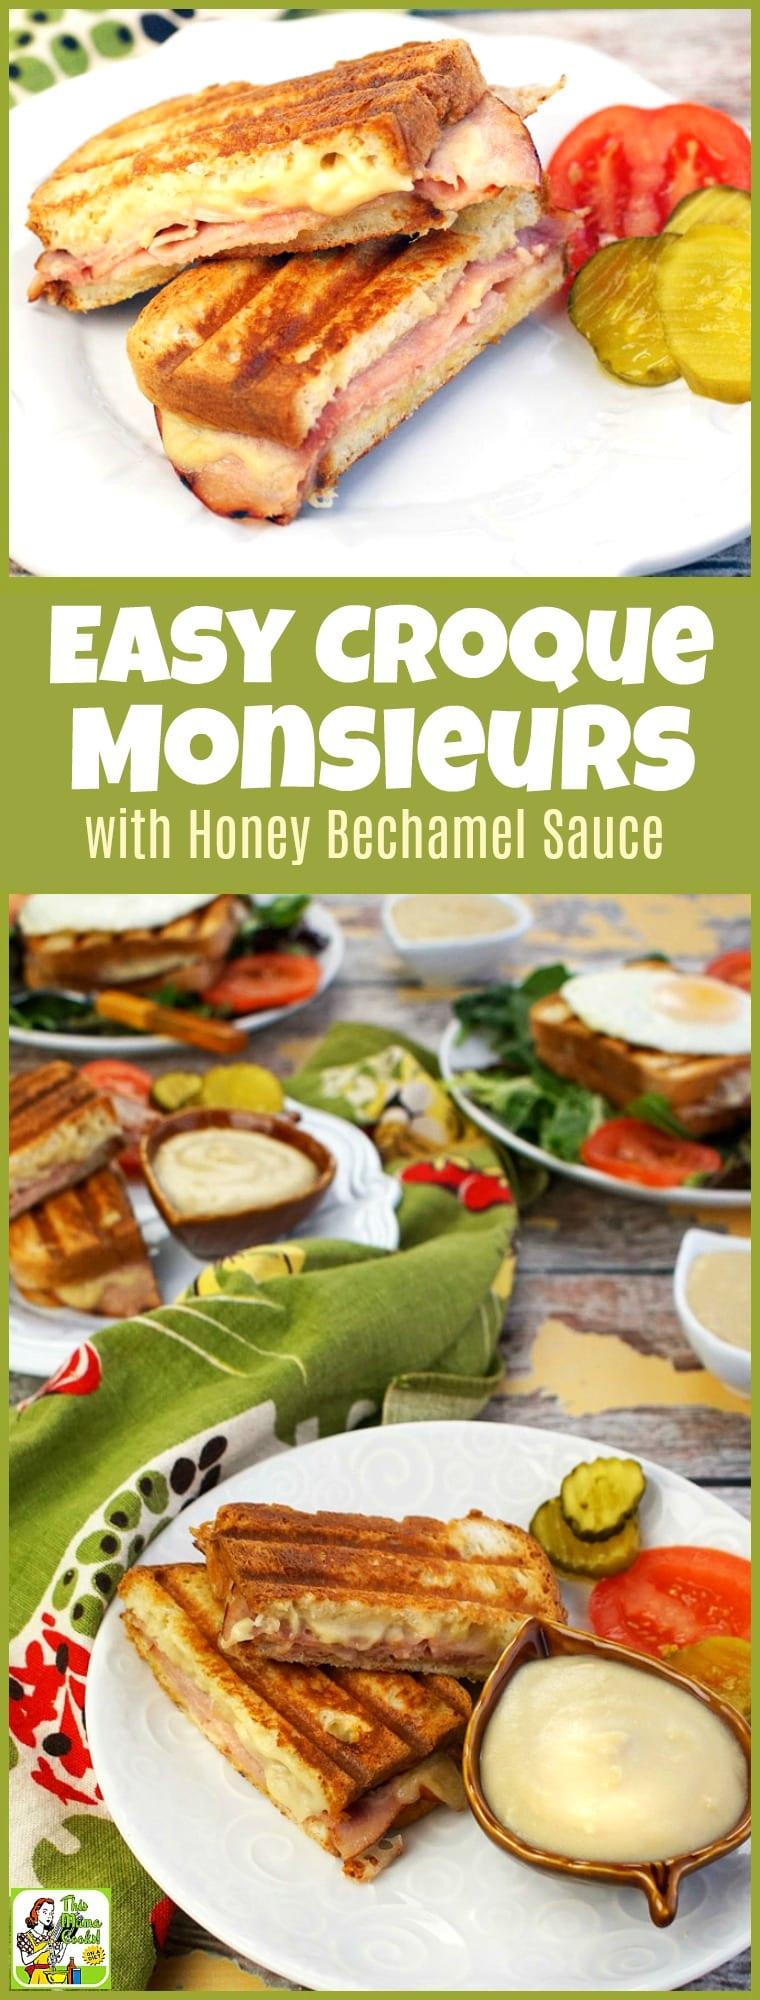 Just because you're gluten free doesn't mean you can't enjoy an Easy Croque Monsieur with Honey Bechamel Sauce! Just use gluten free bread, ham and the included honey bechamel sauce recipe. Add a fried egg on top and turn it into a croque madame recipe that\'s perfect to entertain friends and family for brunch. #recipe #easy #recipeoftheday #healthyrecipes #glutenfree #easyrecipes #breakfast #brunch #snack #snacks #panini #grilledcheese #sandwiches #ham #cheese #honey #bechamel